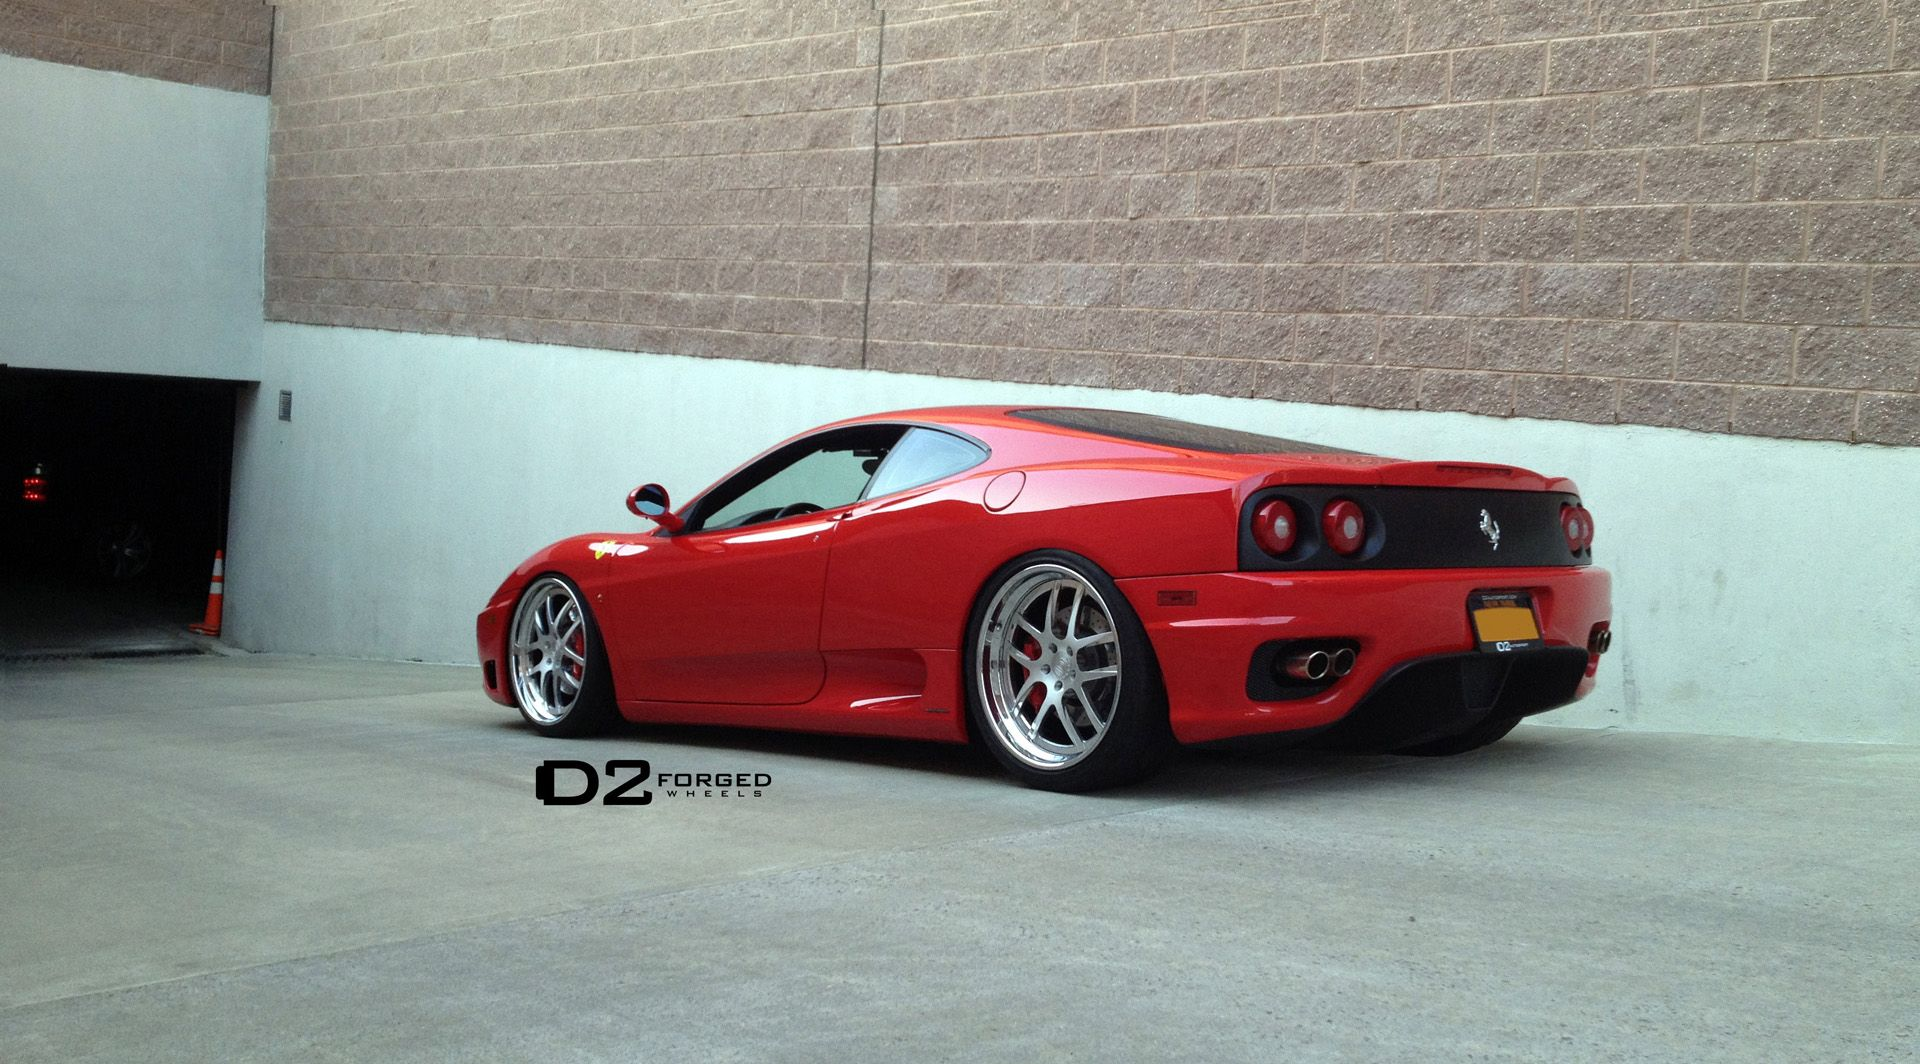 ferrari 360 ferrari 360 20 d2forged fms 08 wheels cars pinterest ferrari 360 ferrari. Black Bedroom Furniture Sets. Home Design Ideas